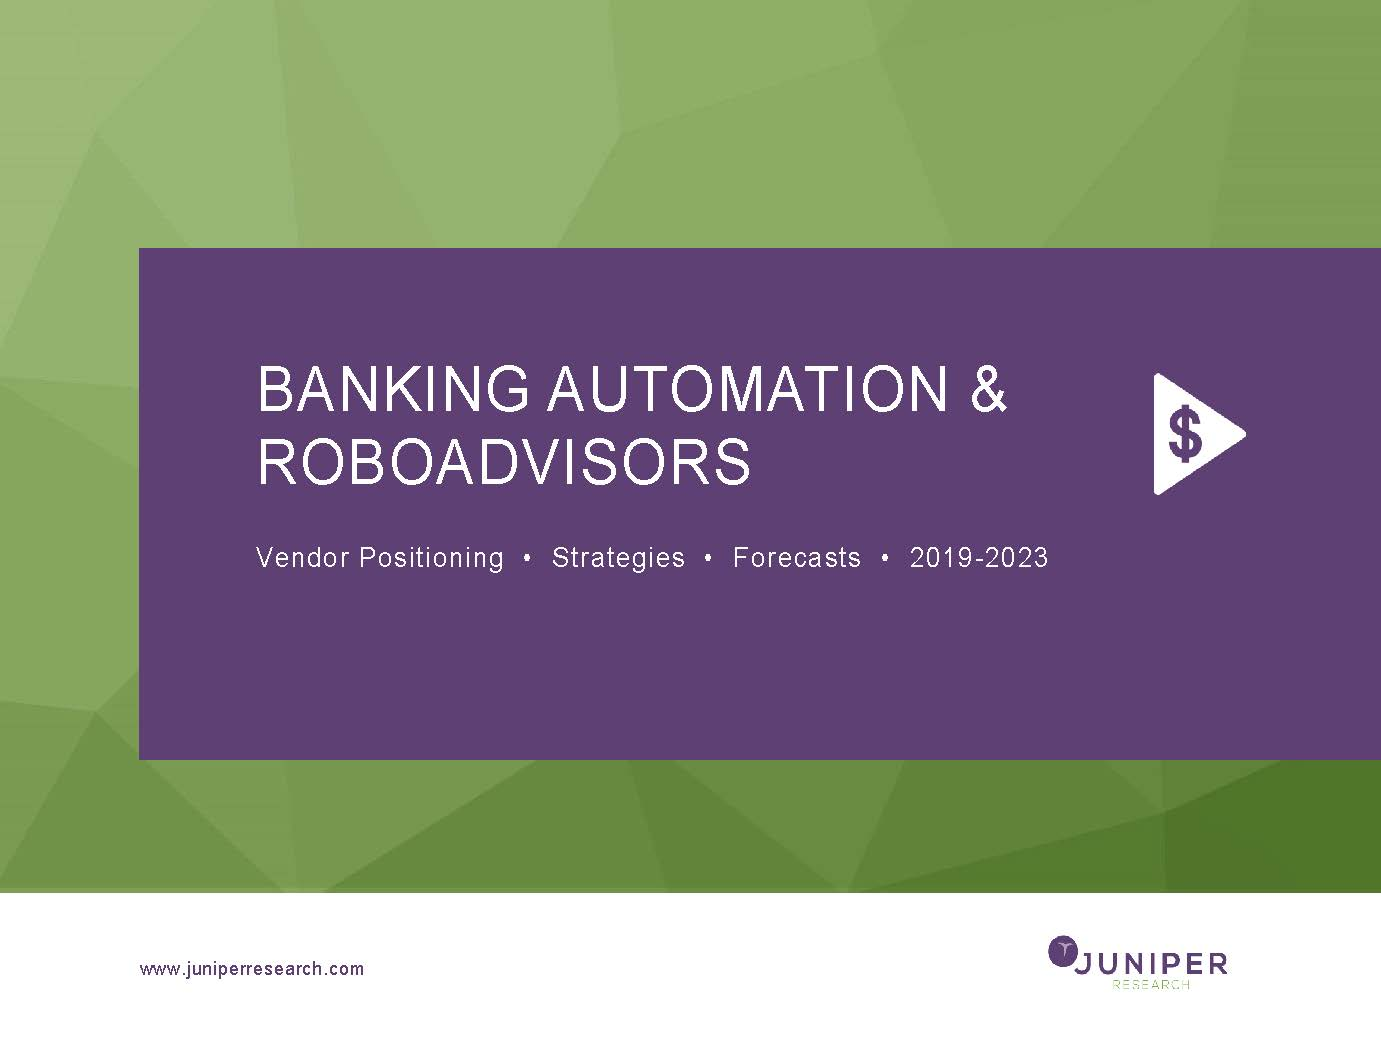 Banking Automation & Roboadvisors: Vendor Positioning, Strategies & Forecasts 2019-2023 Full Research Suite